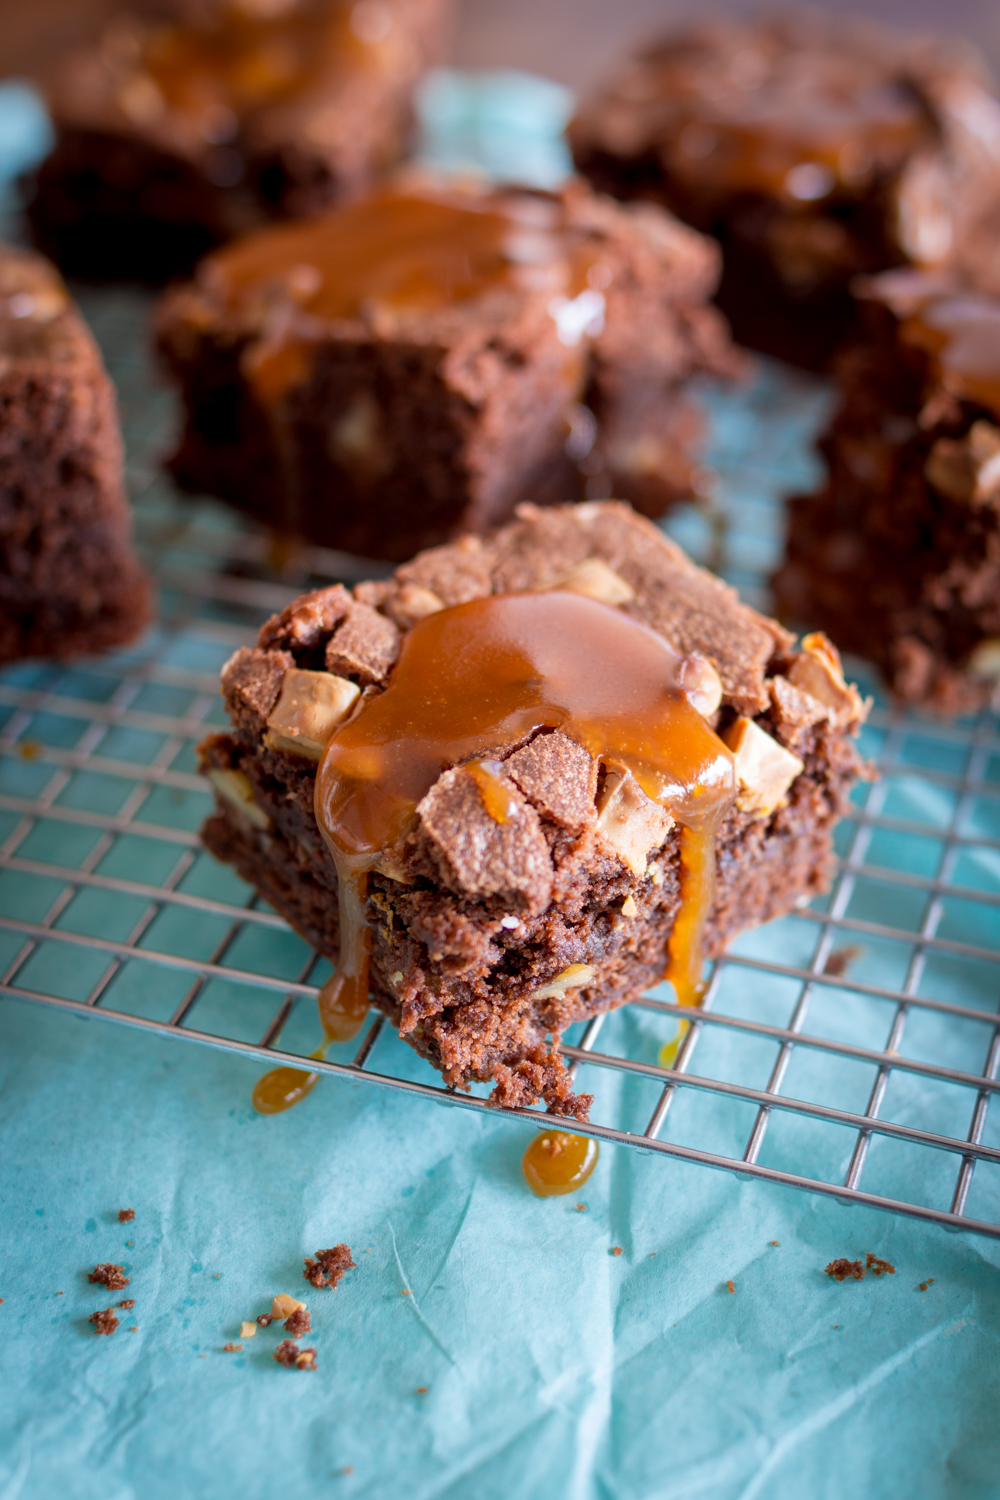 Walnuss Brownies mit Karamellsauce